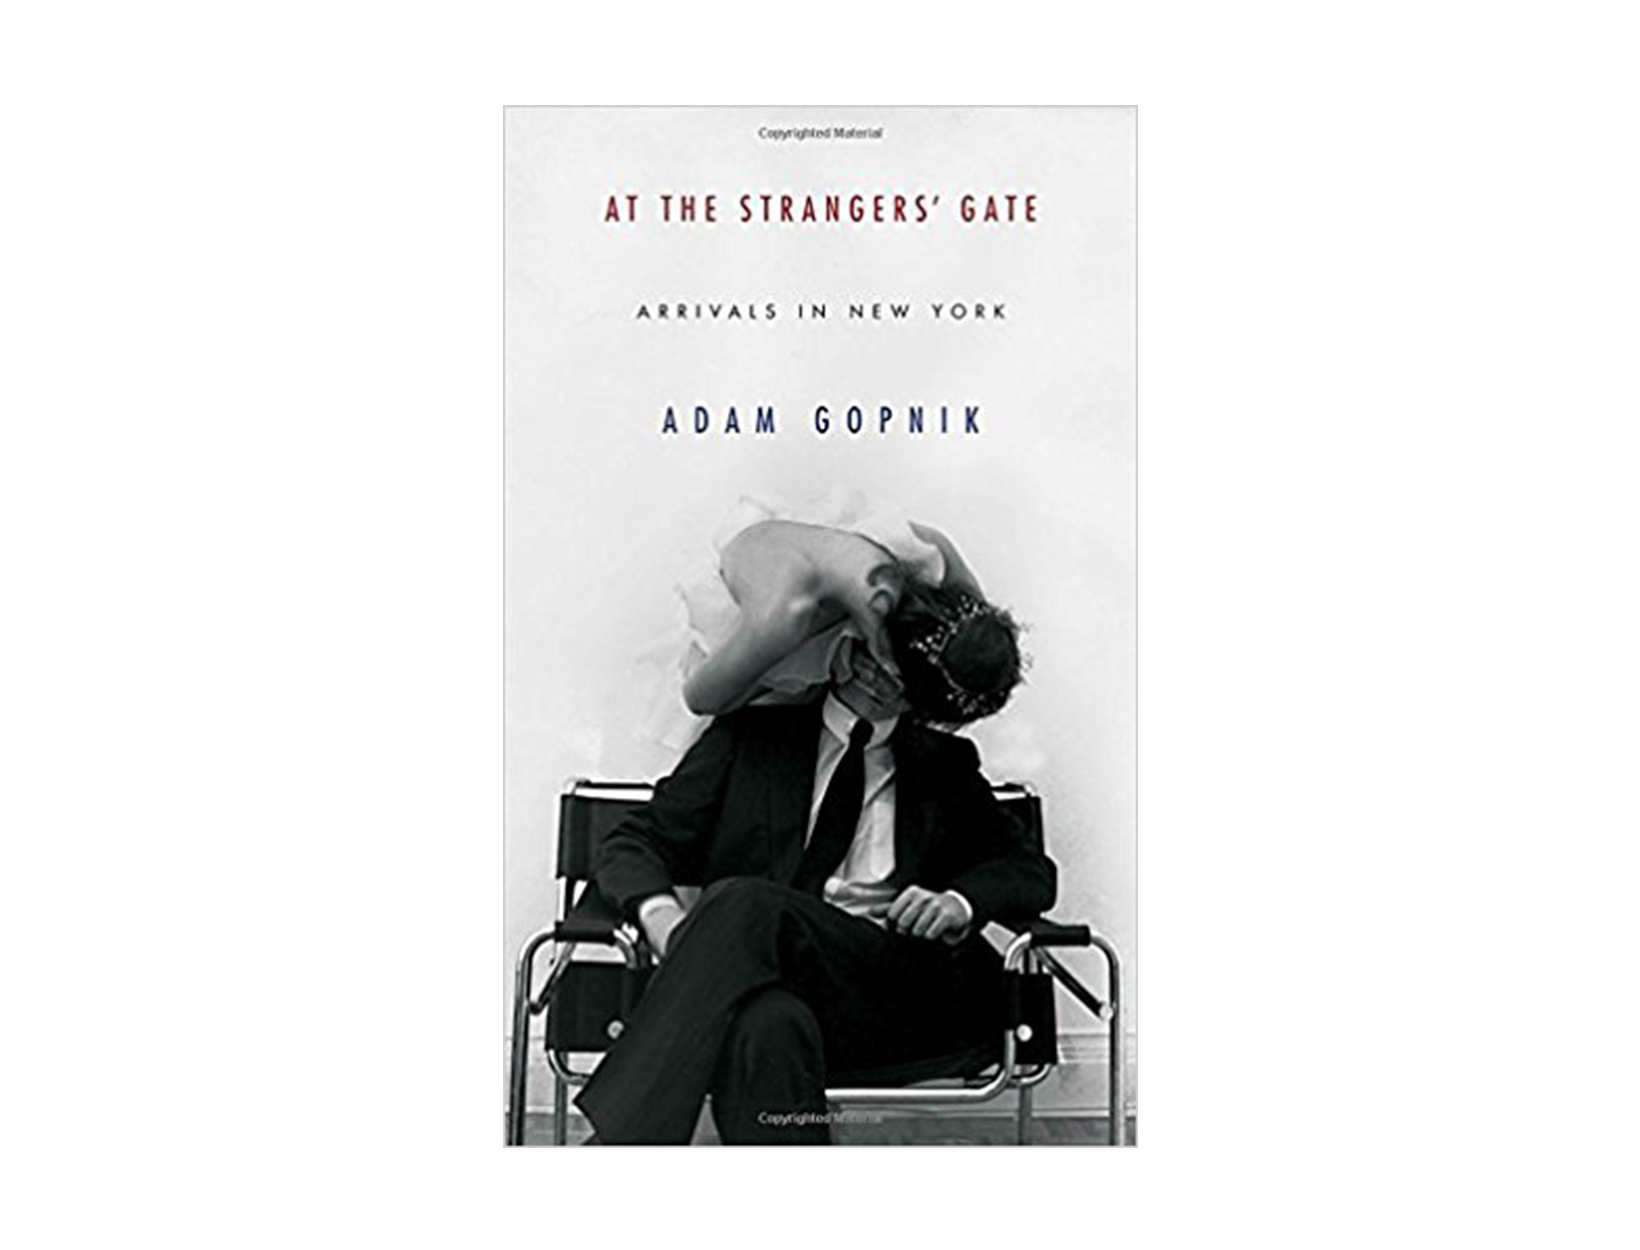 At the Stranger's Gate by Adam Gopnik